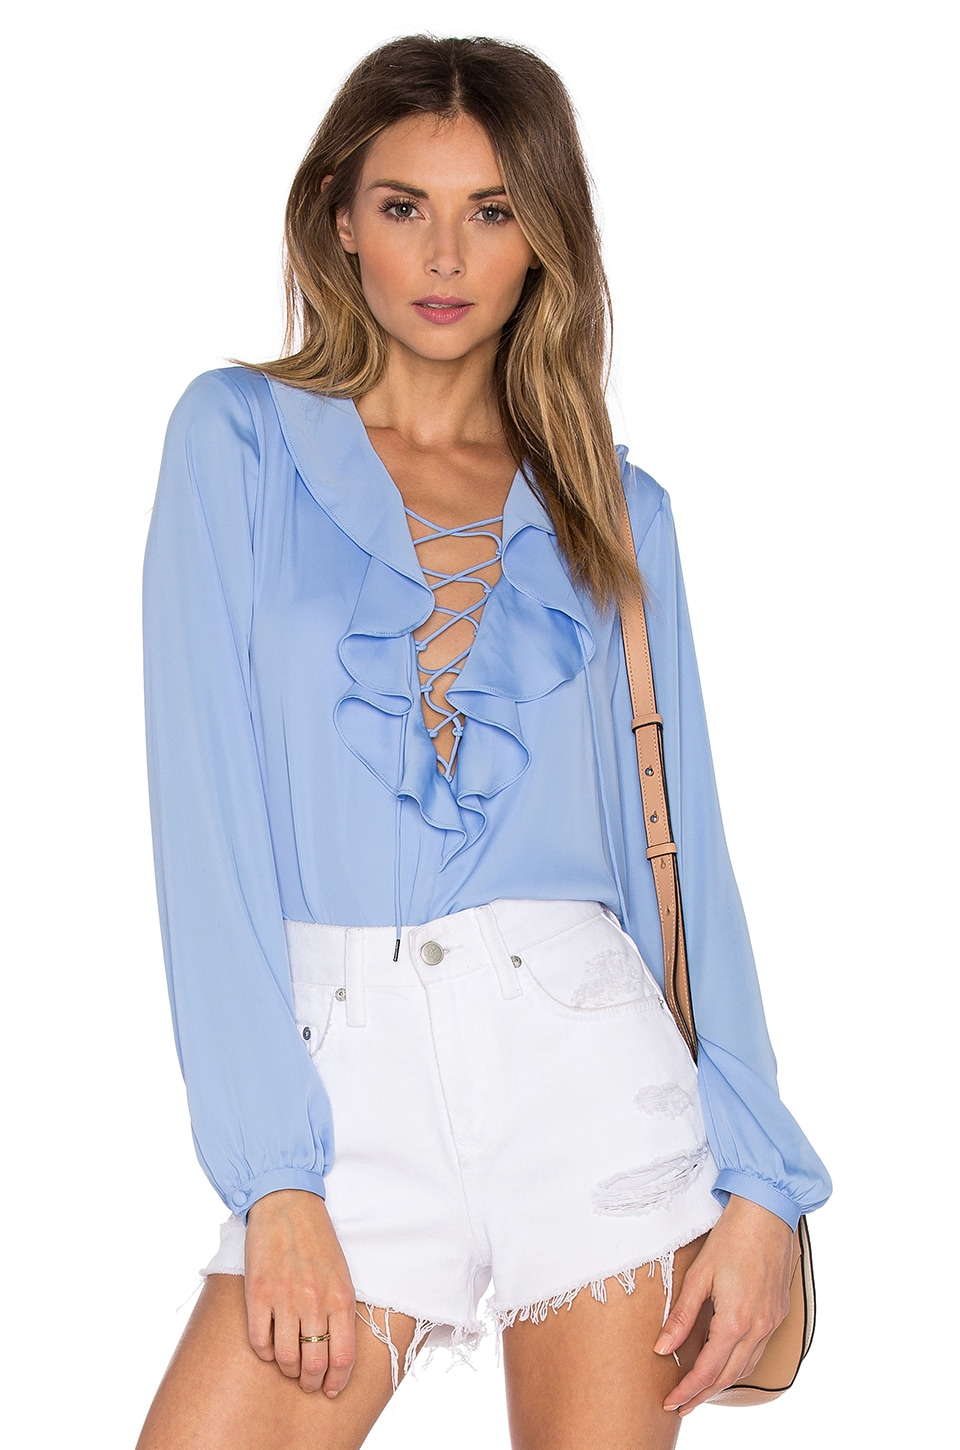 L'Academie The Ruffle Boho Blouse in Marina